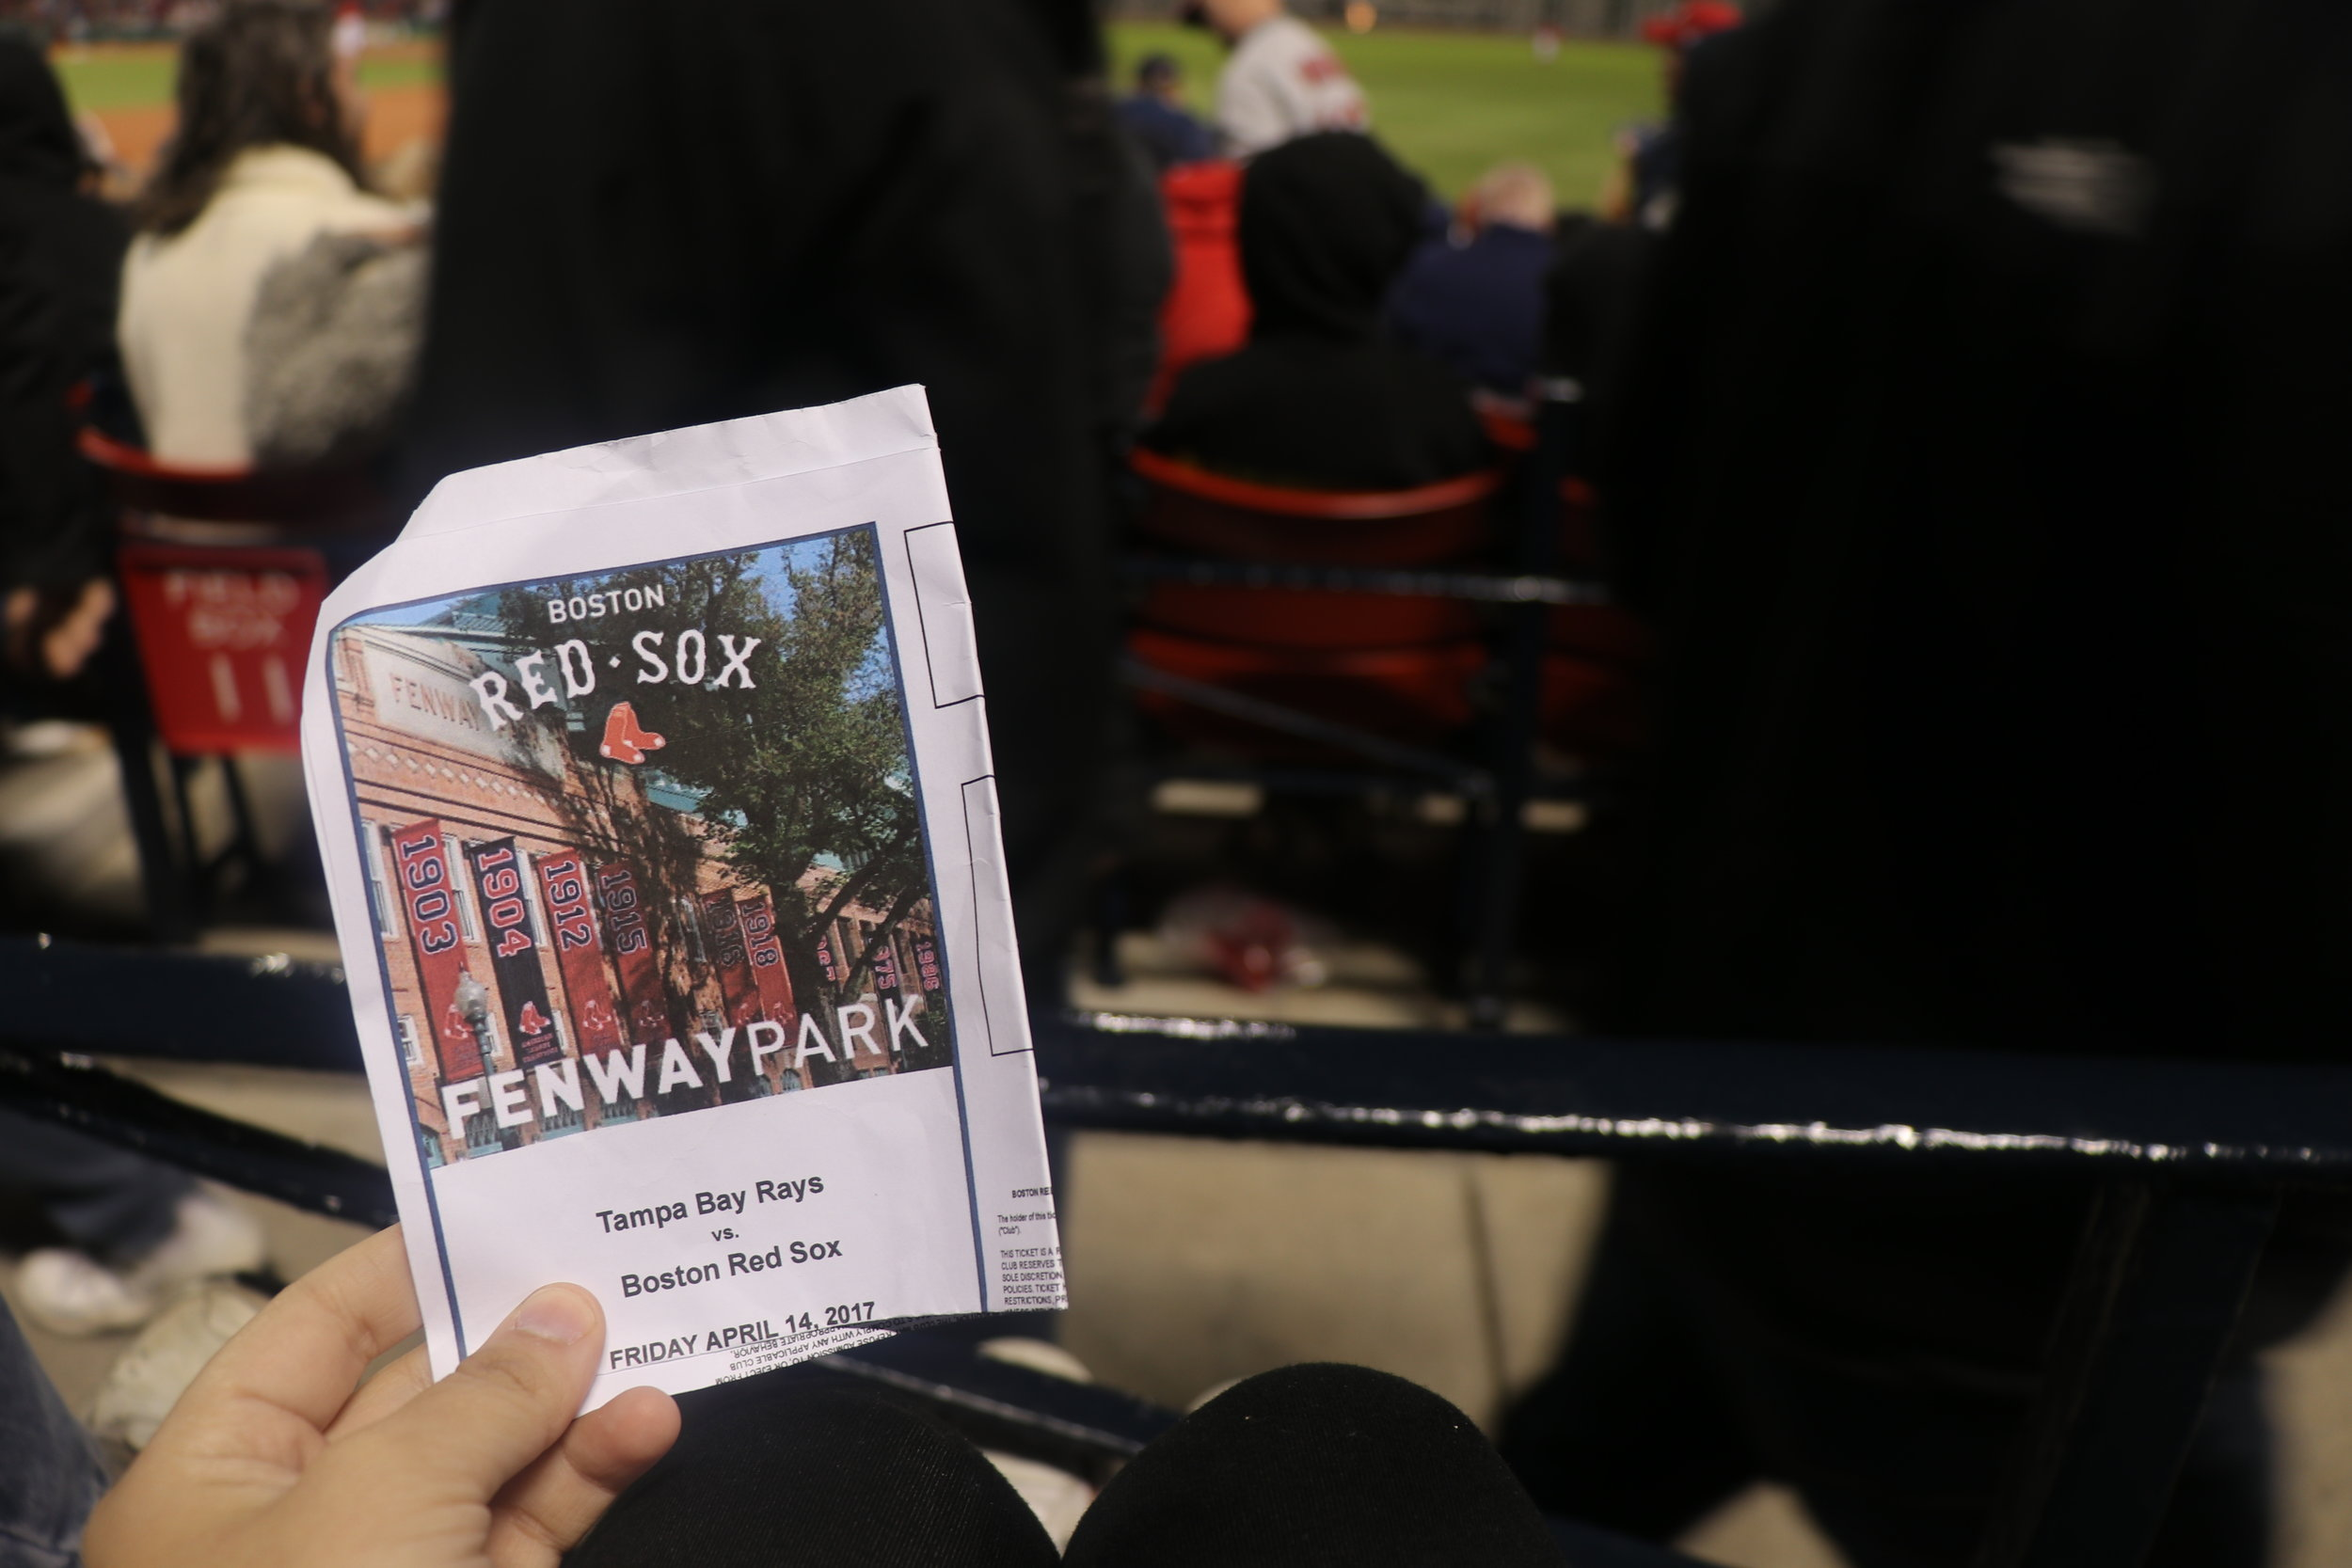 Game Ticket - Tampa Bay Rays visit the Boston Red Sox - Score Ray - 10 Sox - 5